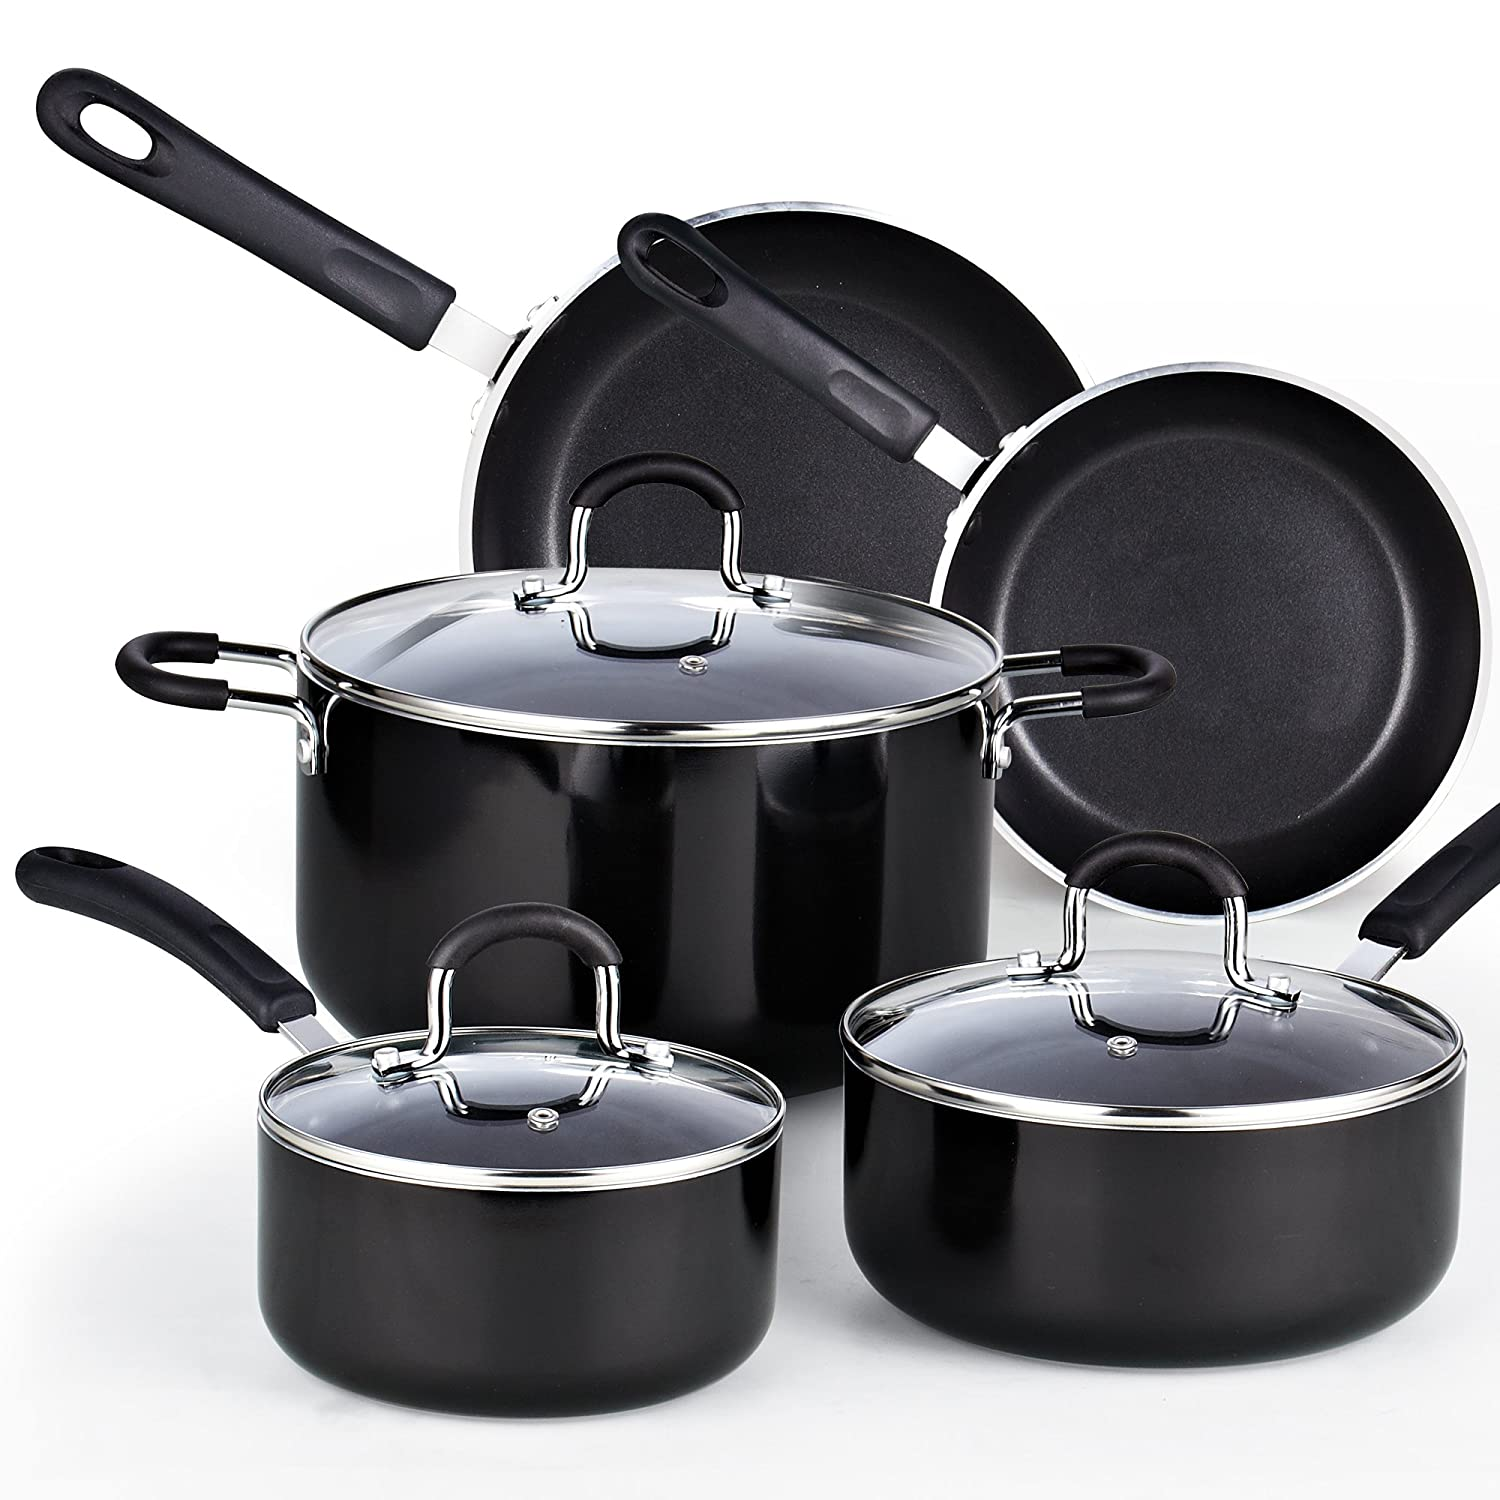 Cook N Home 8-Piece Nonstick Heavy Gauge Cookware Set, Black